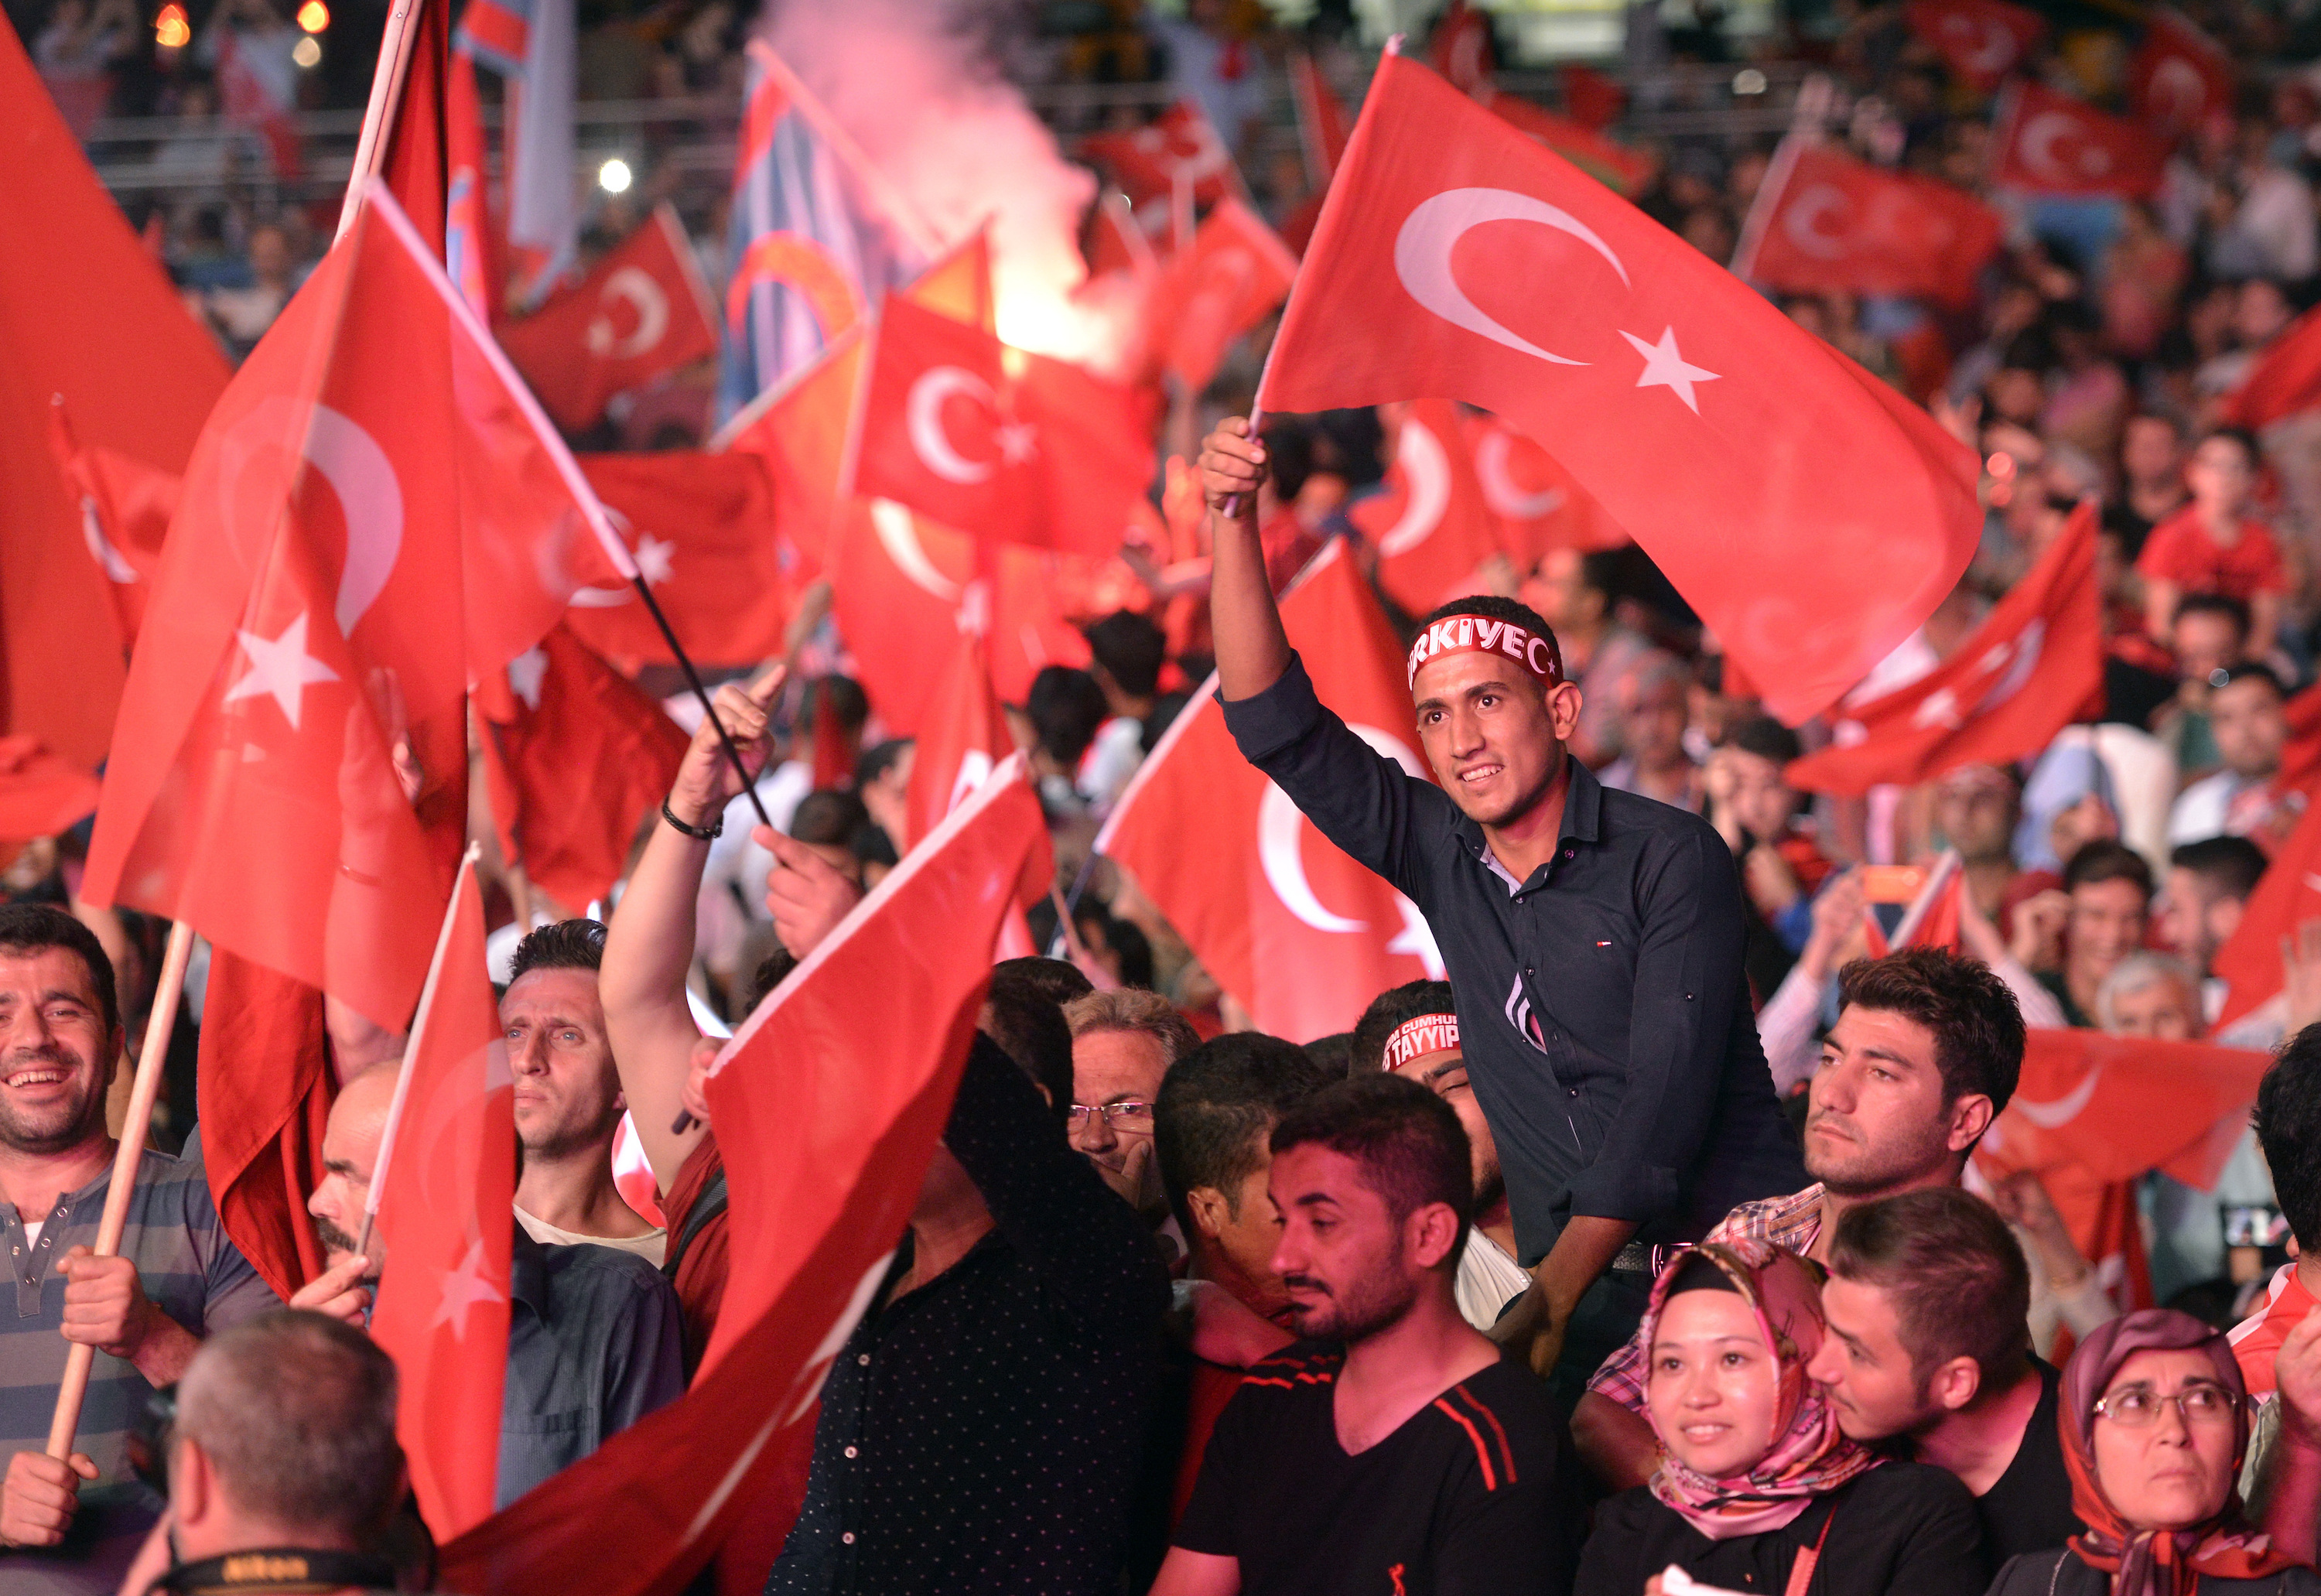 Turkey's Government Tried to Hack Hundreds of Protesters Over Twitter, Researchers Say